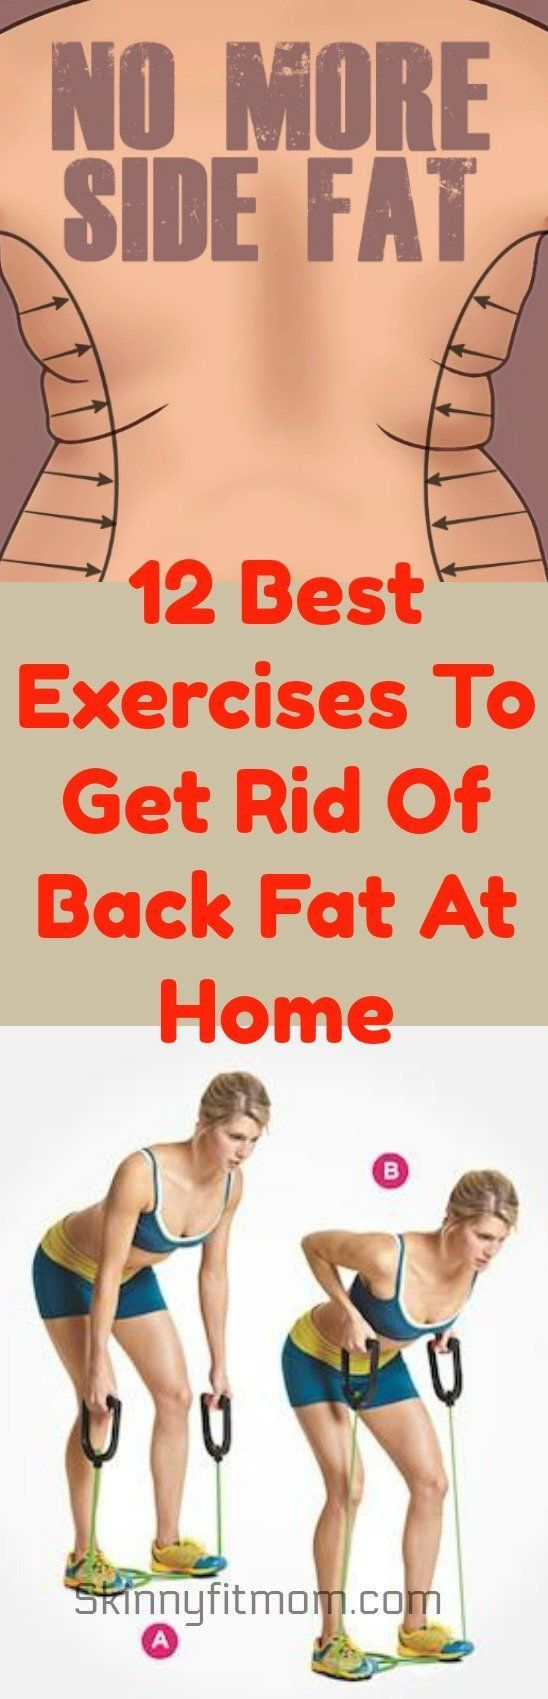 Healthy Lifestyle Goals 12 Best Exercises To Get Rid Of Back Fat At Home Pinned Over 5k Times Healthy Leading Health Well Being Inspiration Source